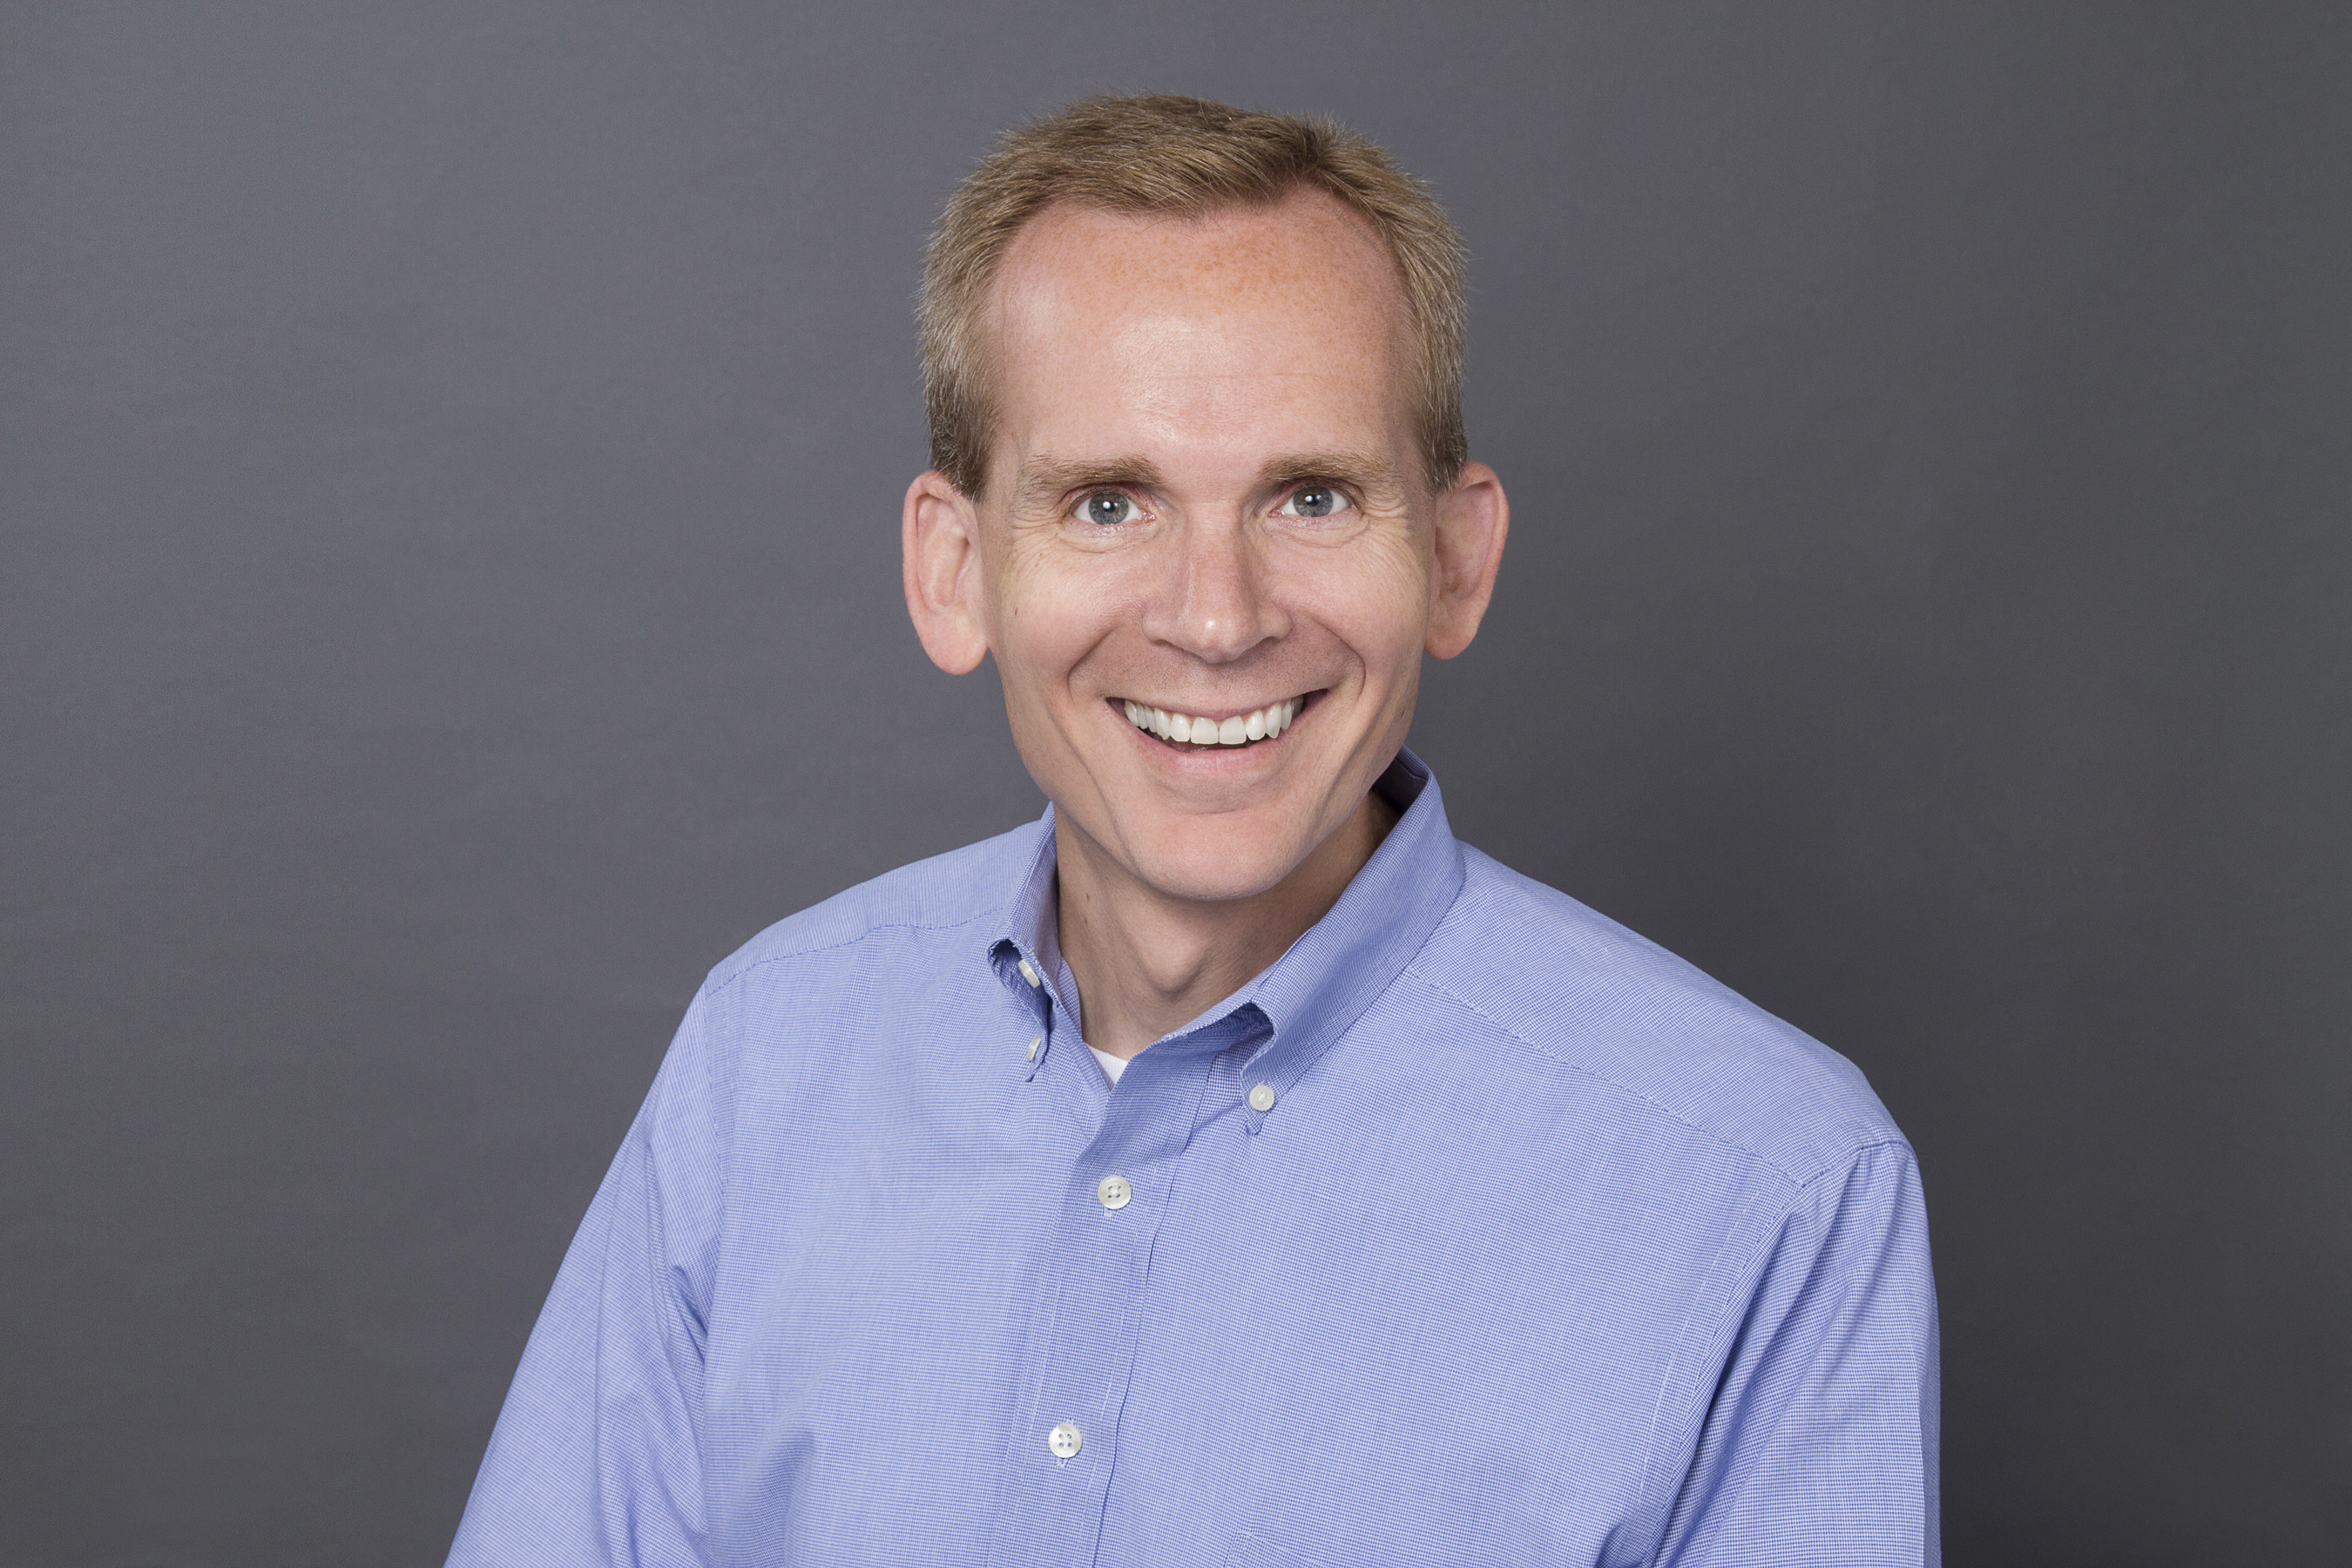 Curt Kibler Joins Answer Financial as Chief Information Officer